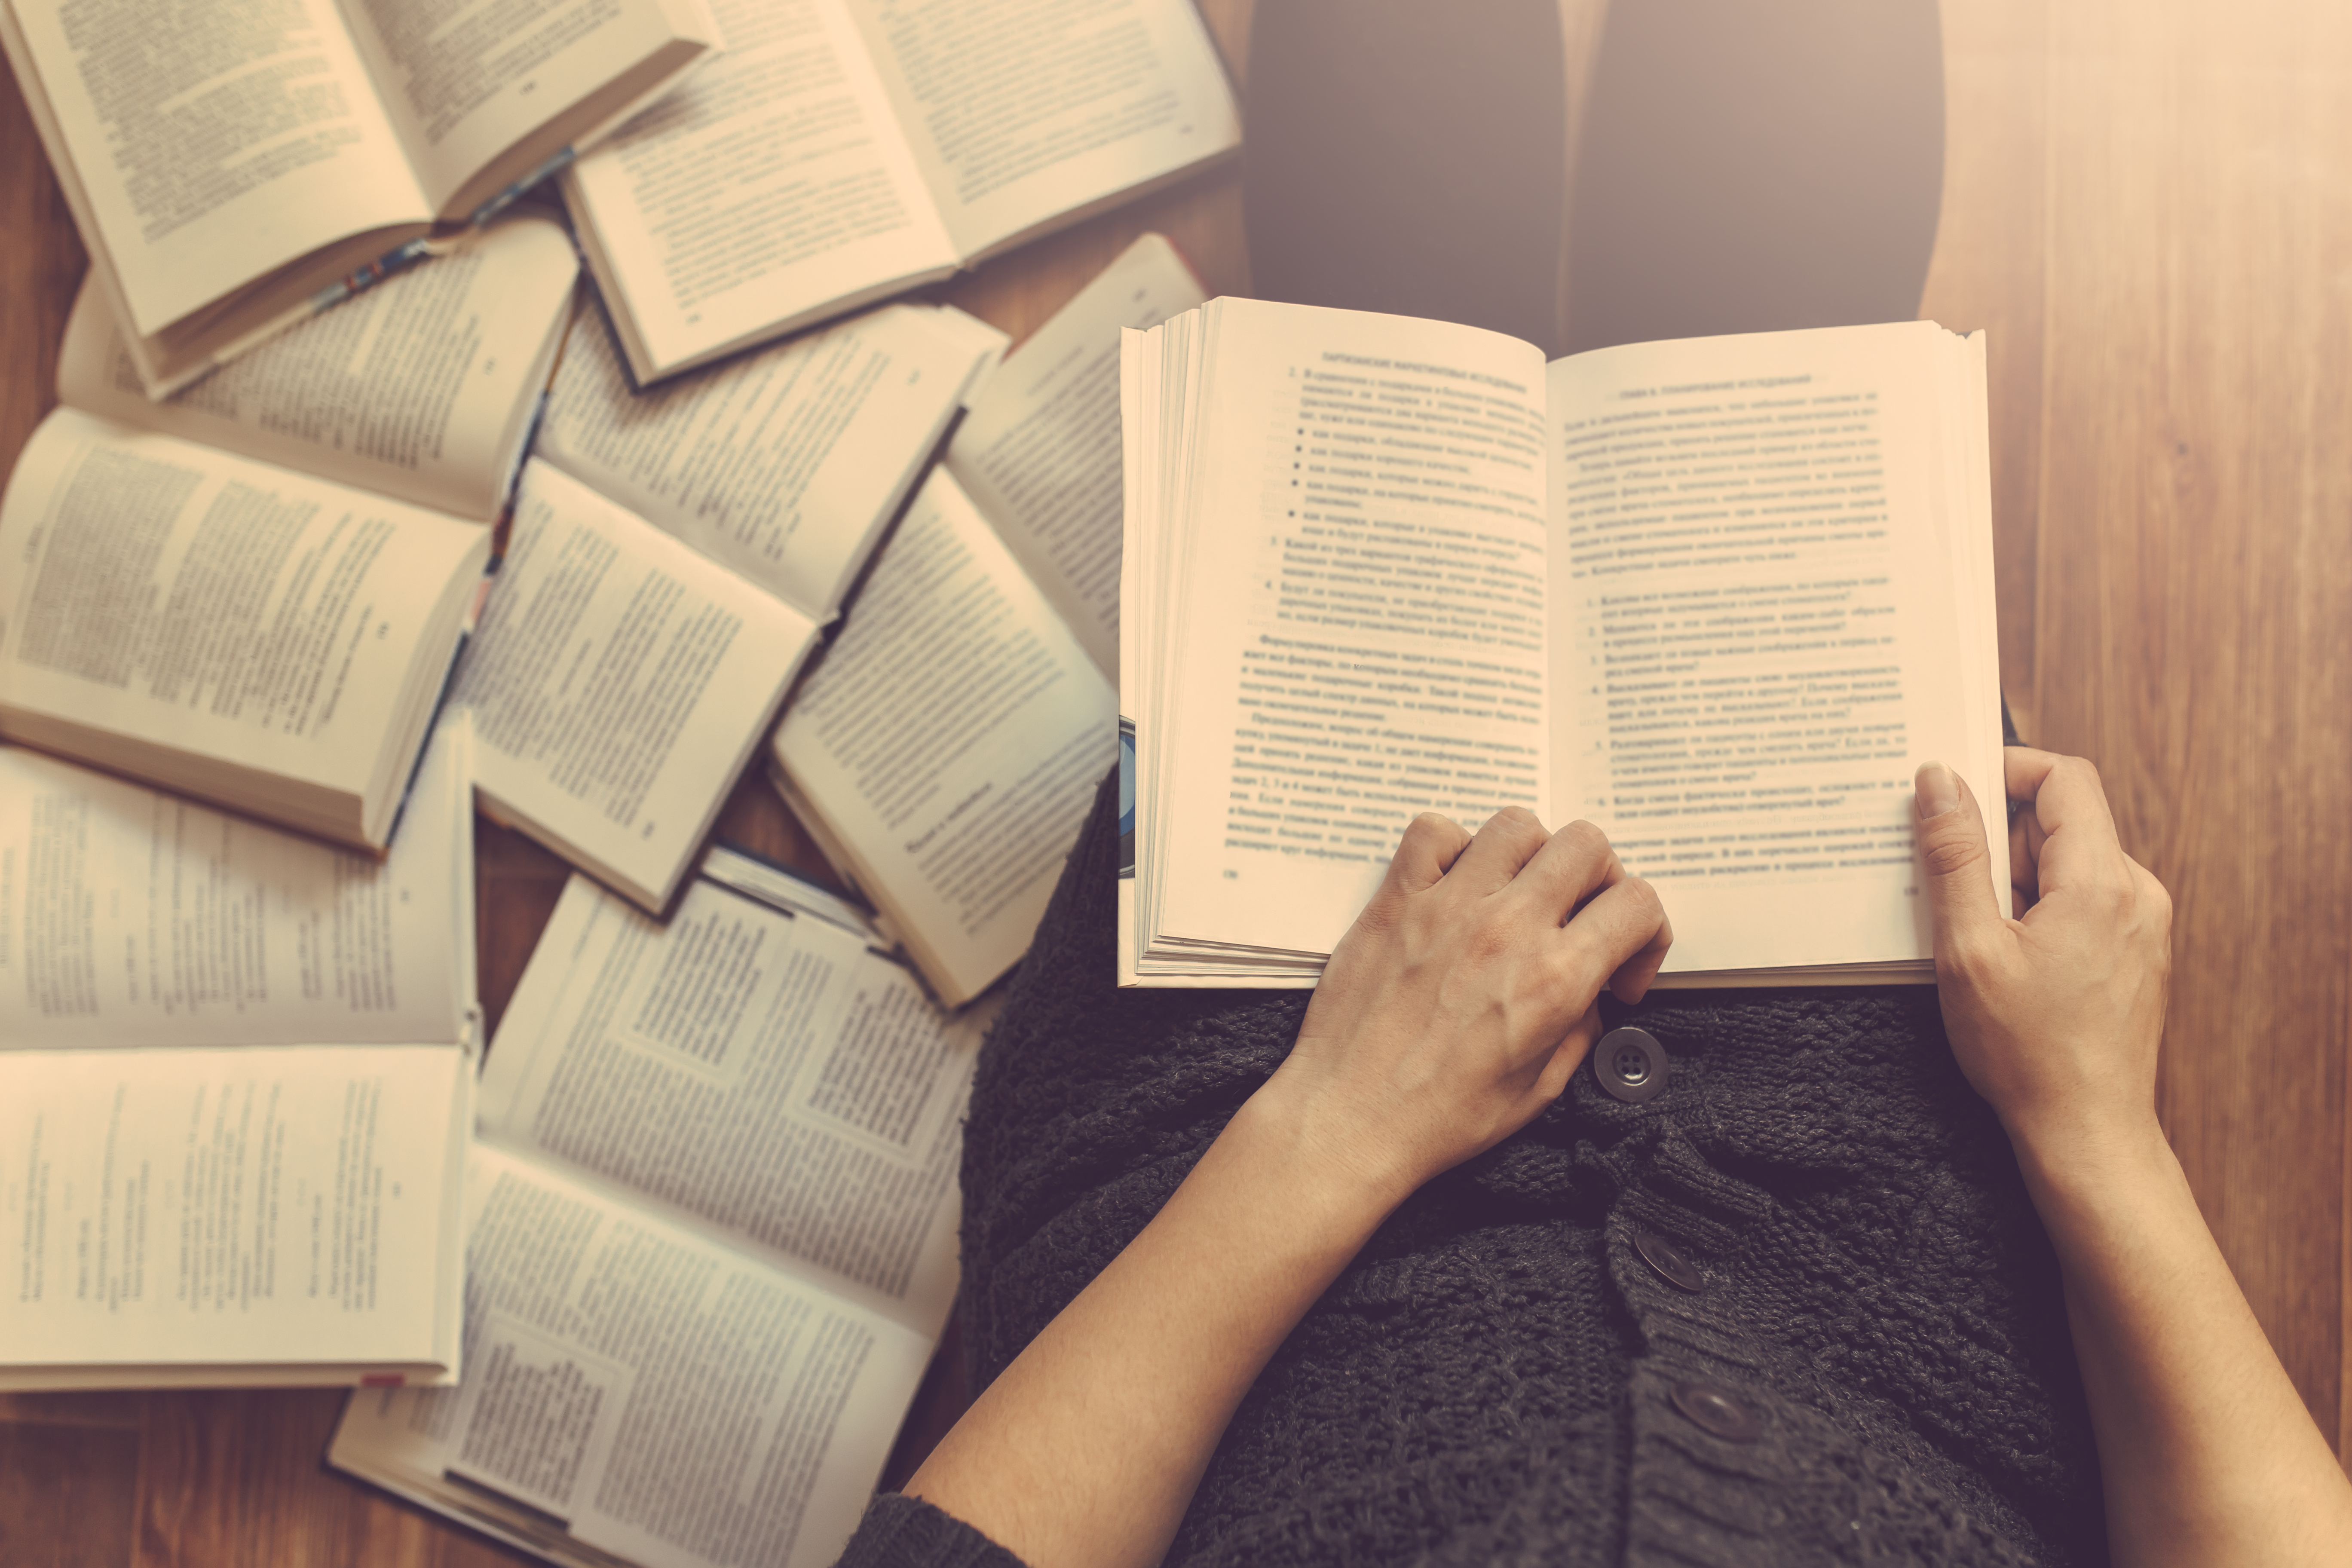 OUR LIST OF CONSCIOUS BOOKS TO READ IN 2018